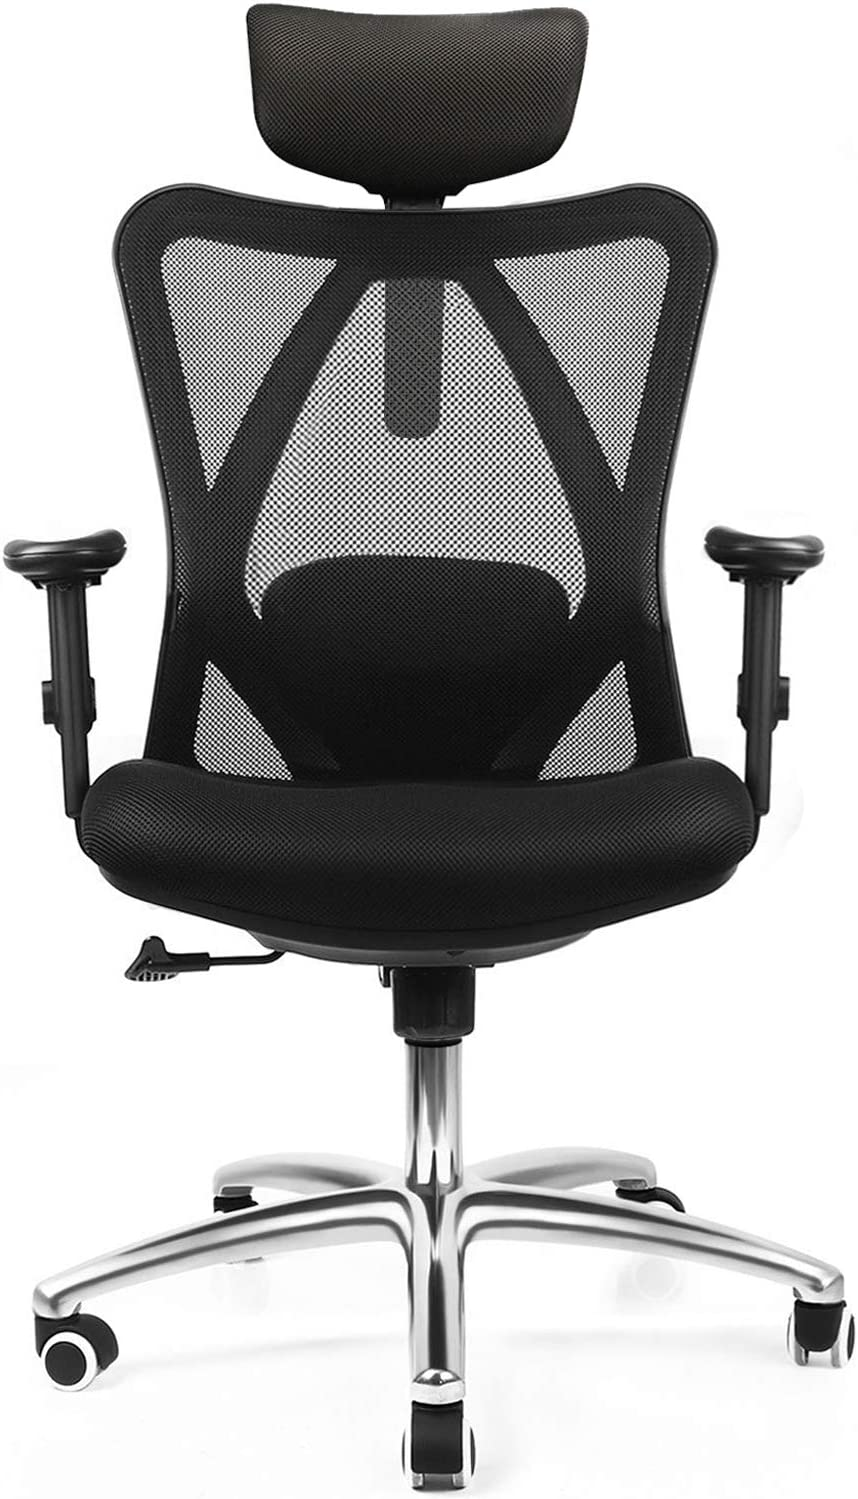 Mfavour Ergonomic Office Chair with Adjustable Arms